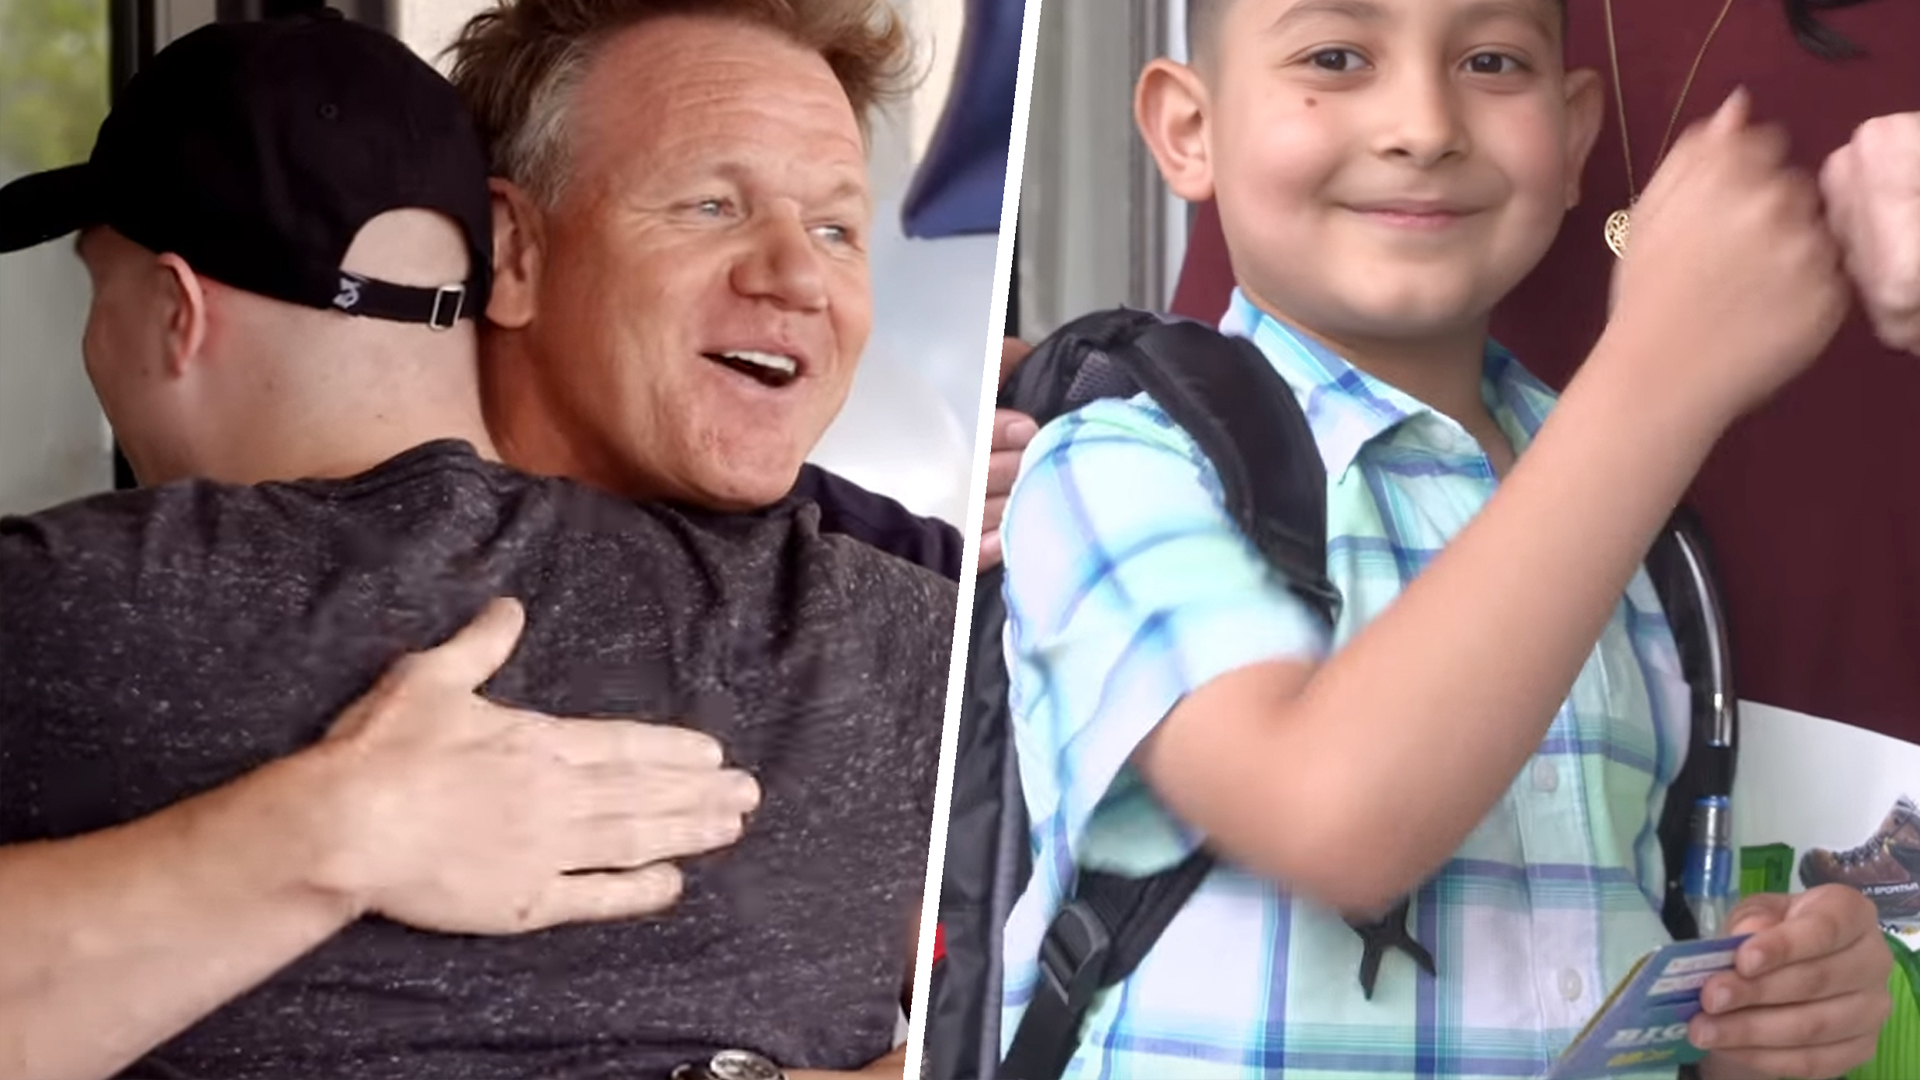 Gordon Ramsay reveals his softer side to make 32 kids' wishes come true